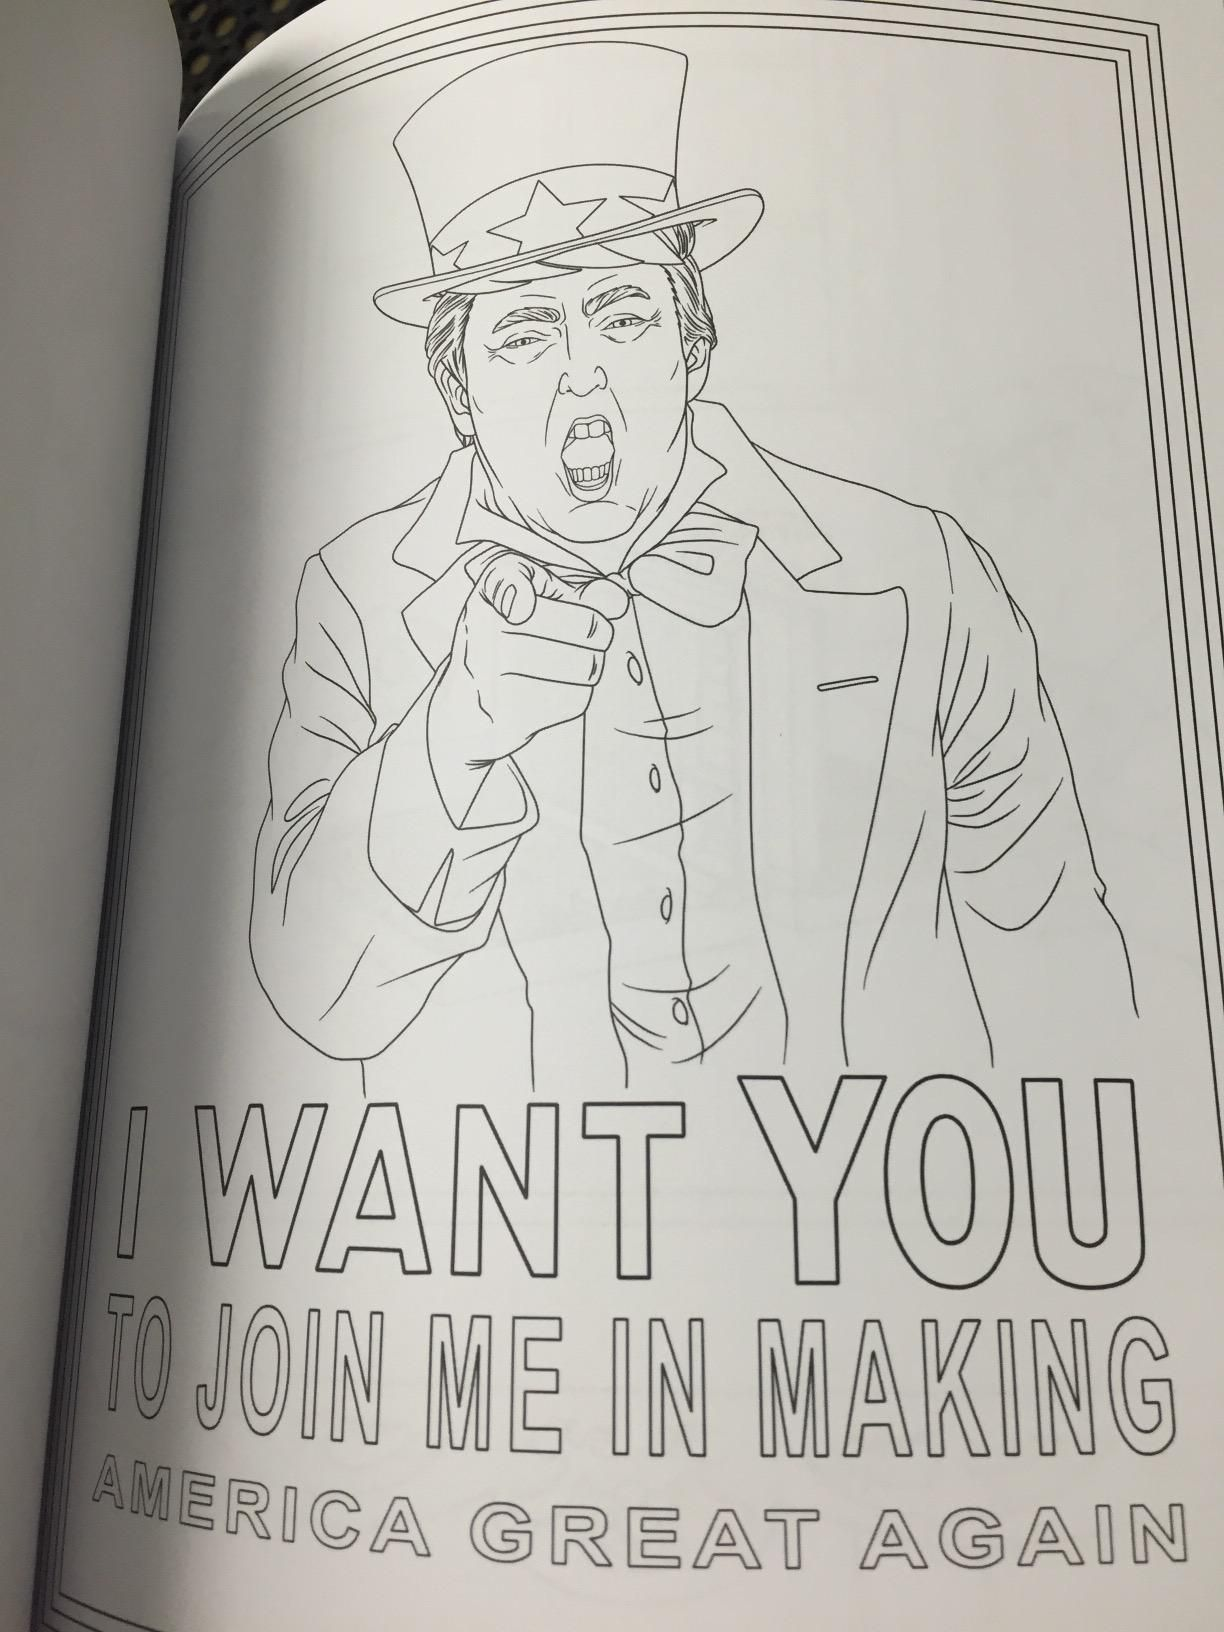 Amazon Prime Now: The Trump Coloring Book (9781682610282): M. G. ...